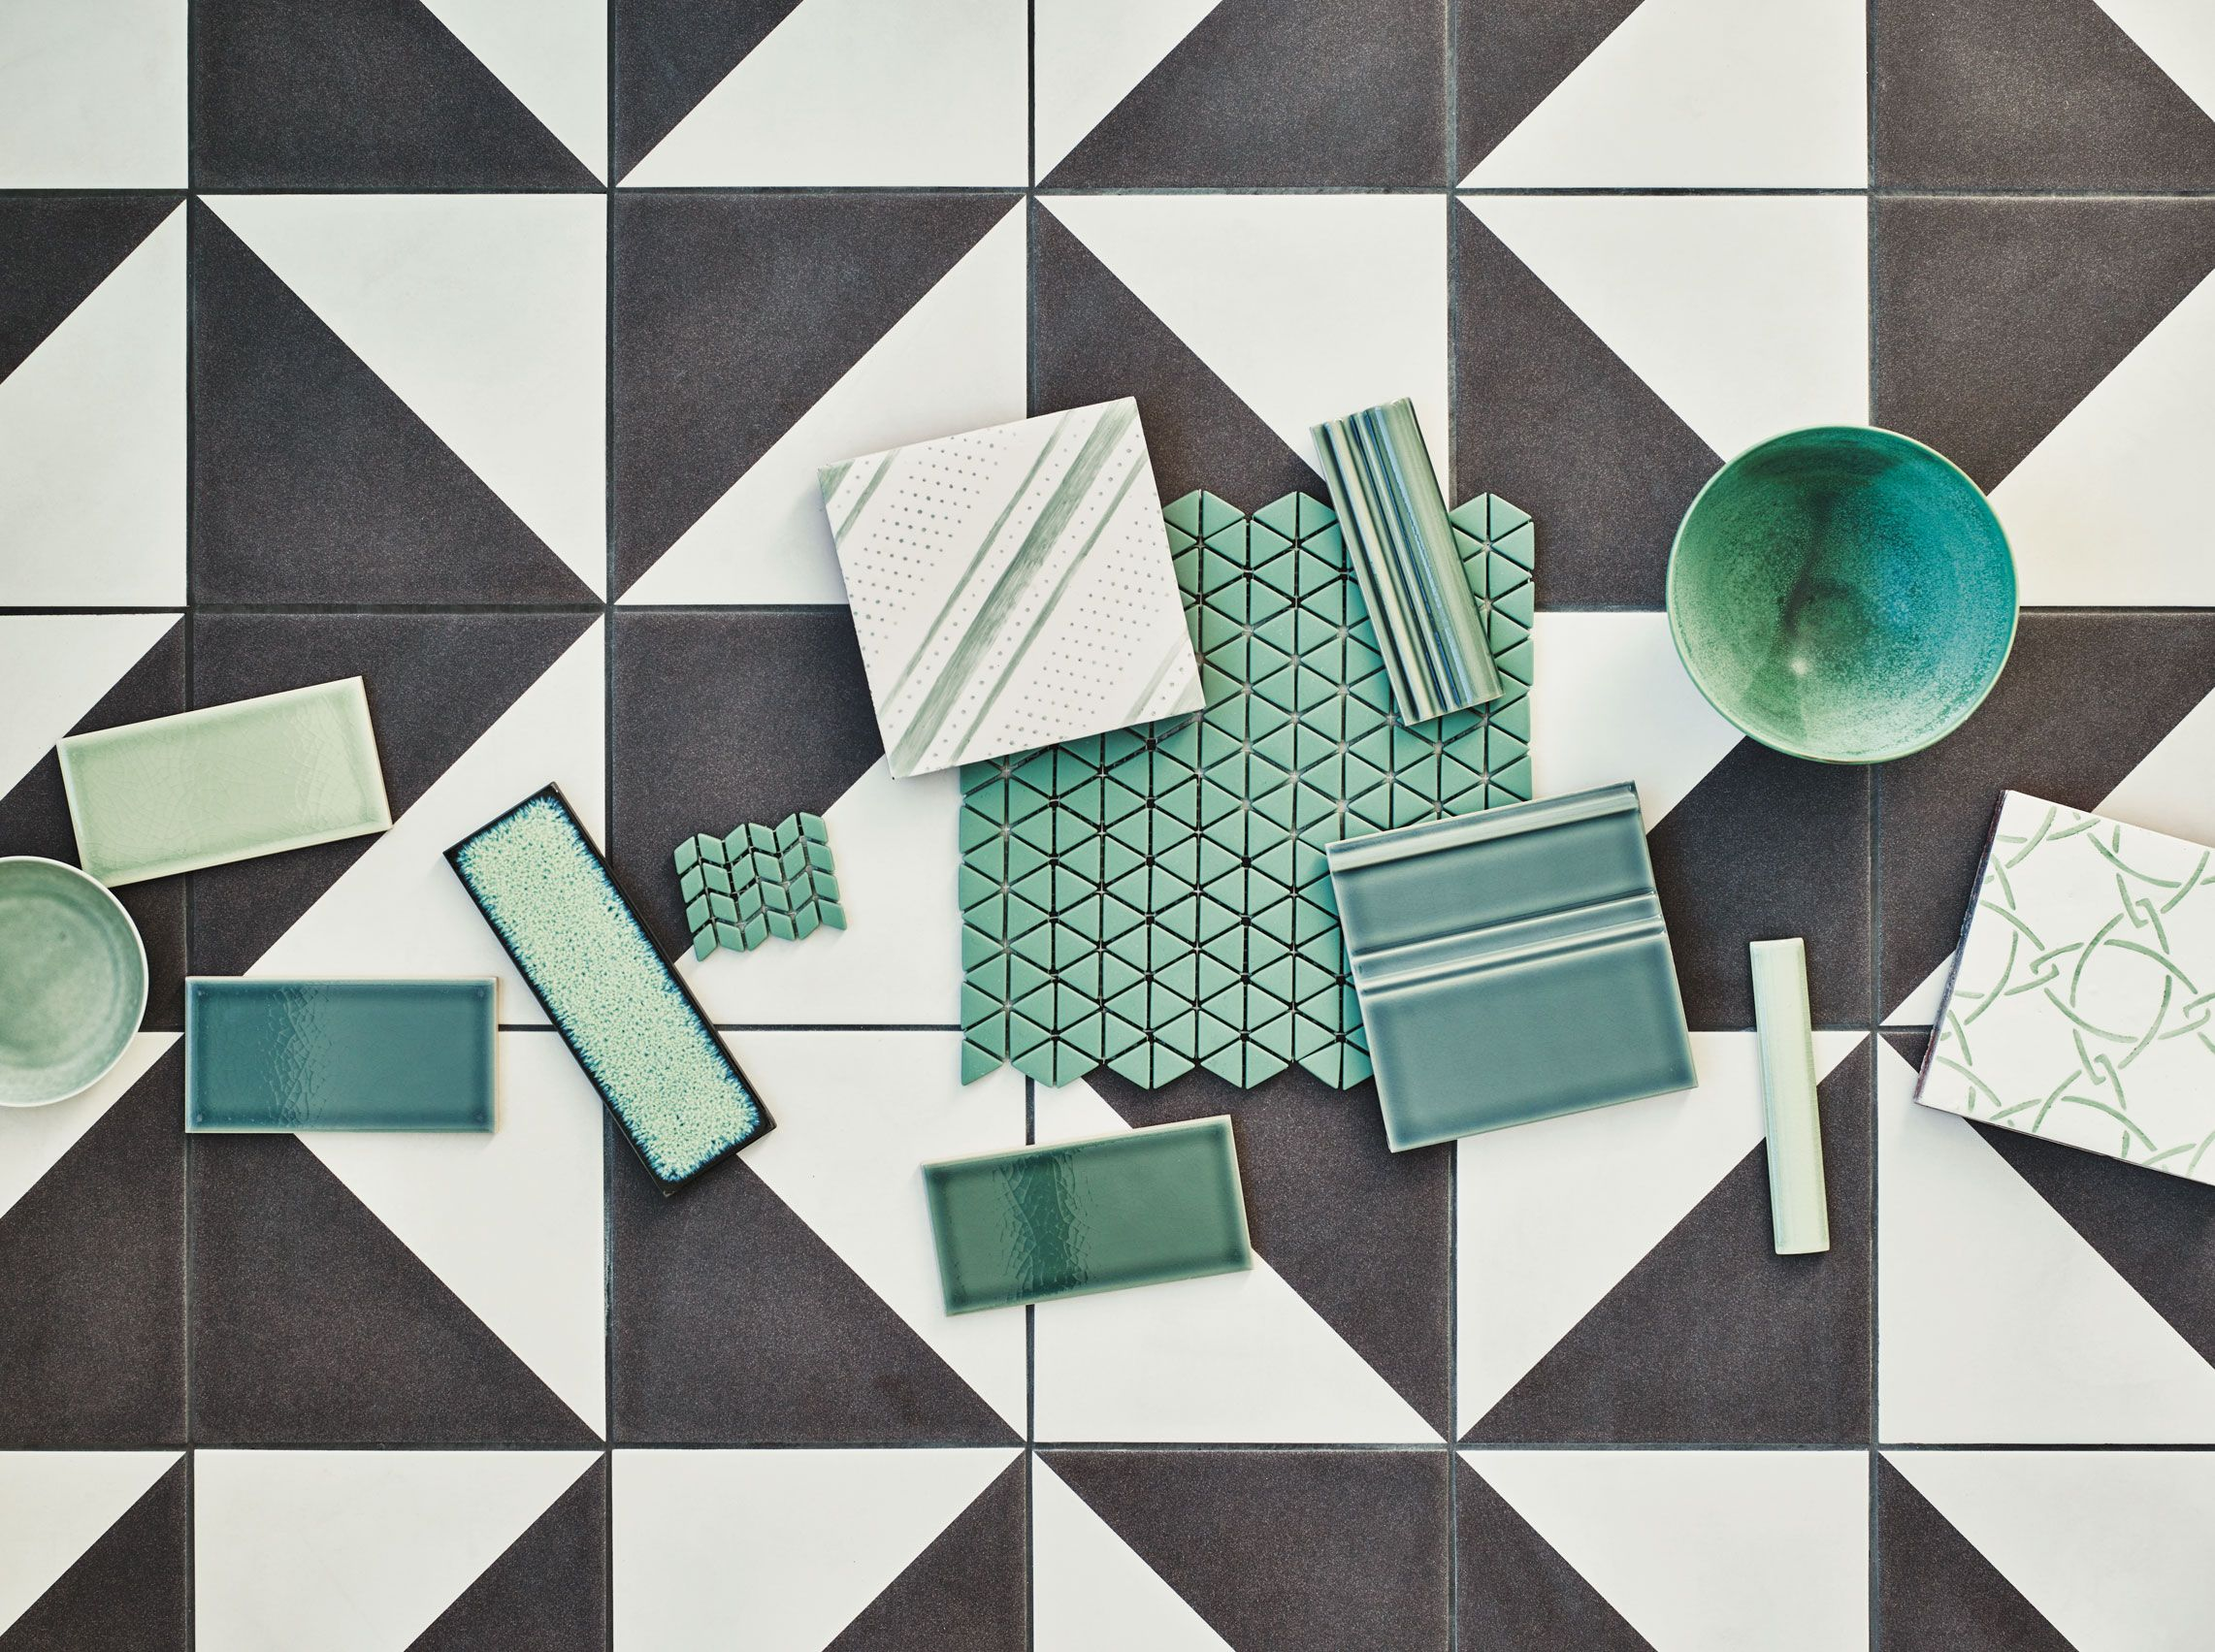 164147133f9 Claybrook - Semaphore Enterprise Porcelain Tile with a selection of glass  and glazed sample tiles  Metro Deco